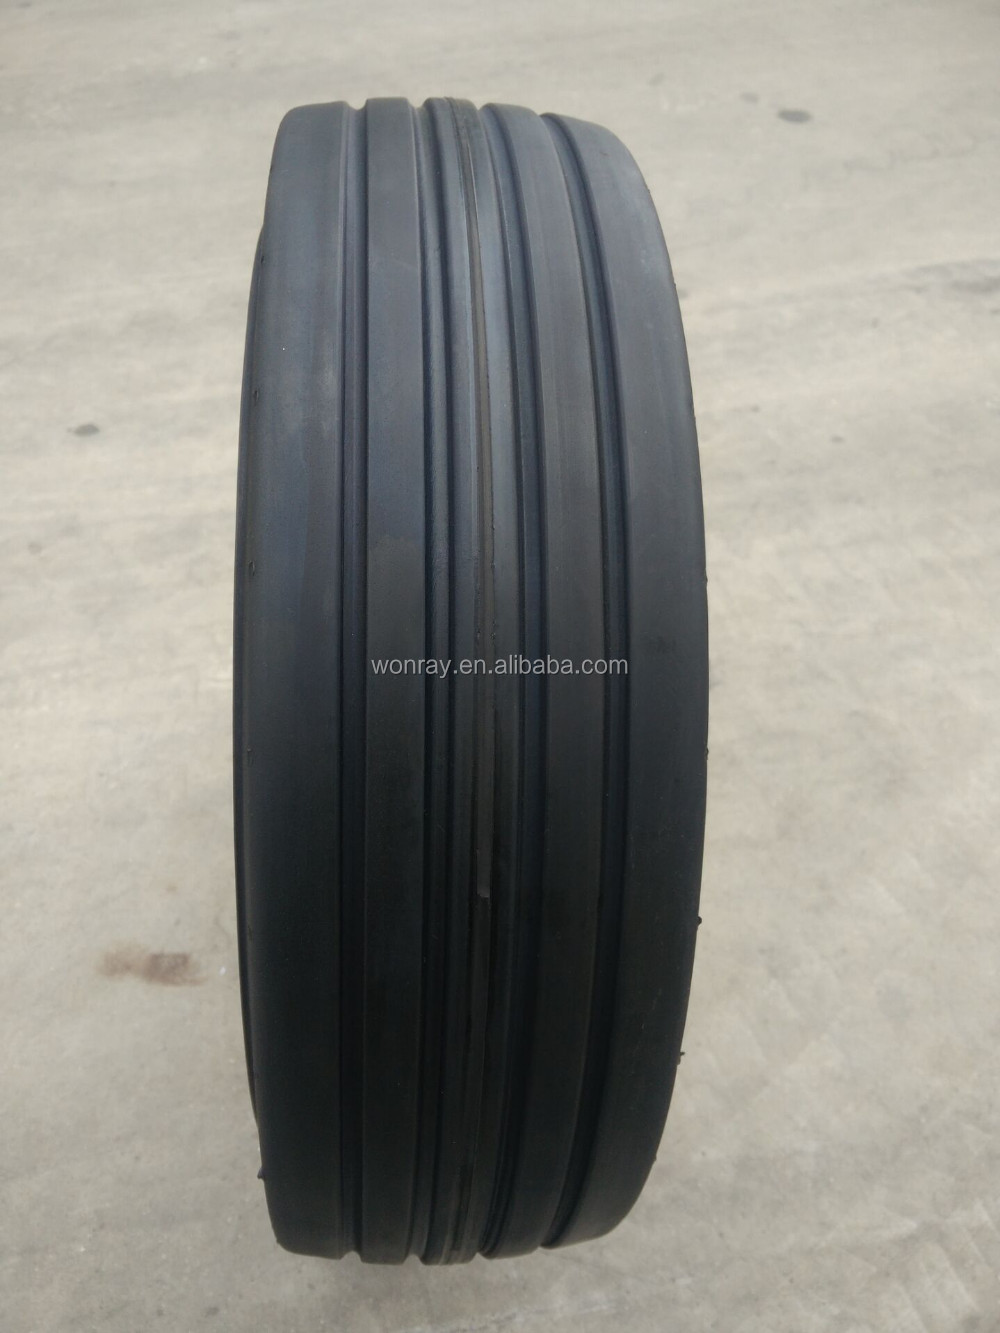 airless cushion aircraft tires for sale solid tire. Black Bedroom Furniture Sets. Home Design Ideas